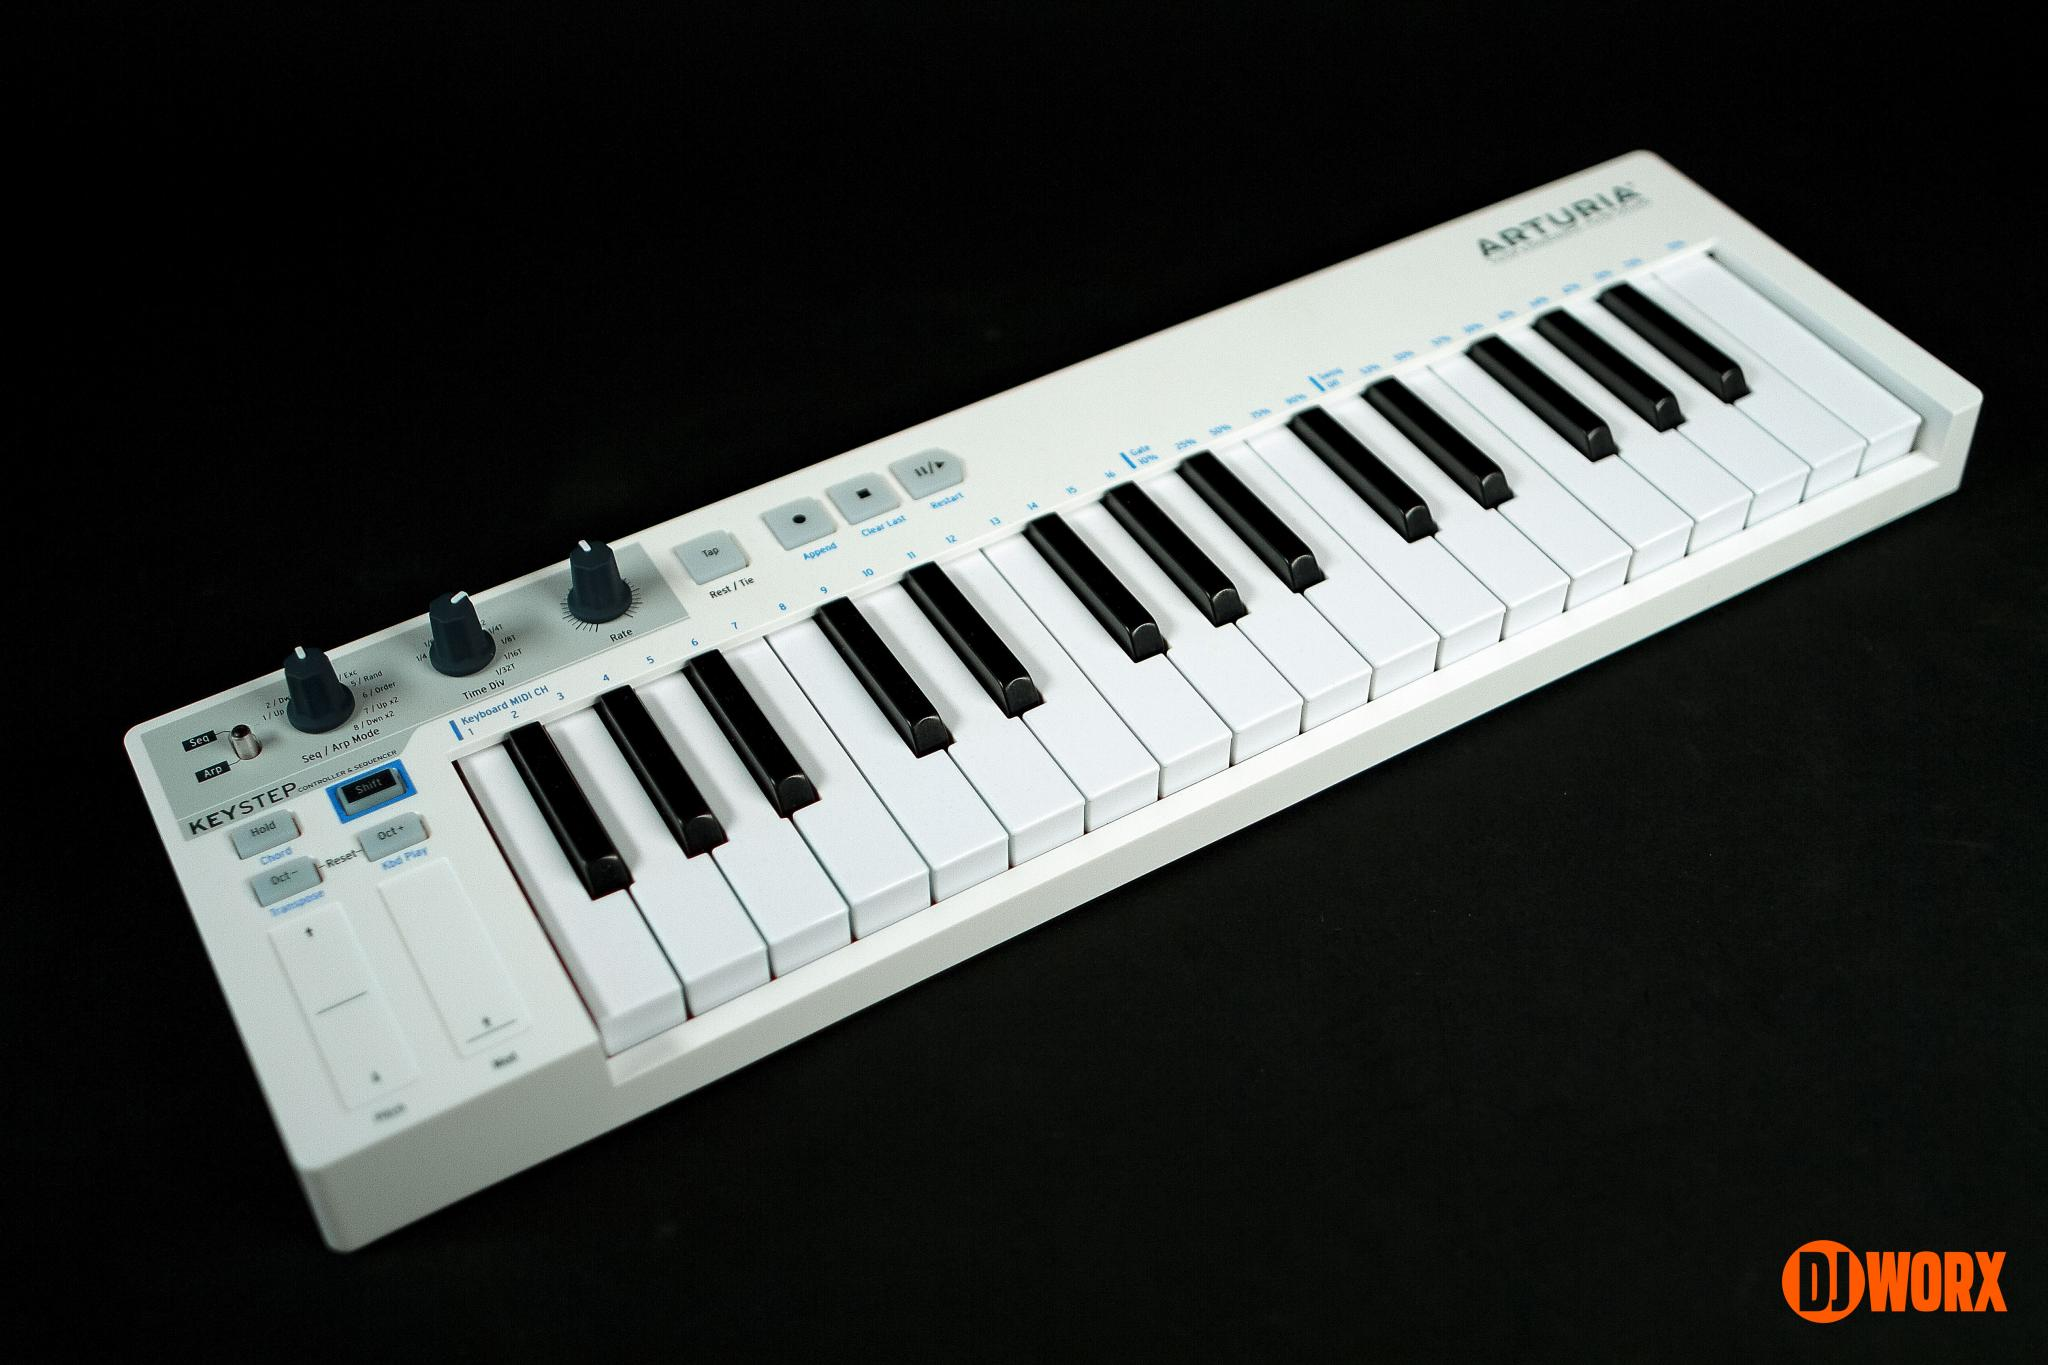 Arturia KeyStep keyboard controller reviewDJ (14)